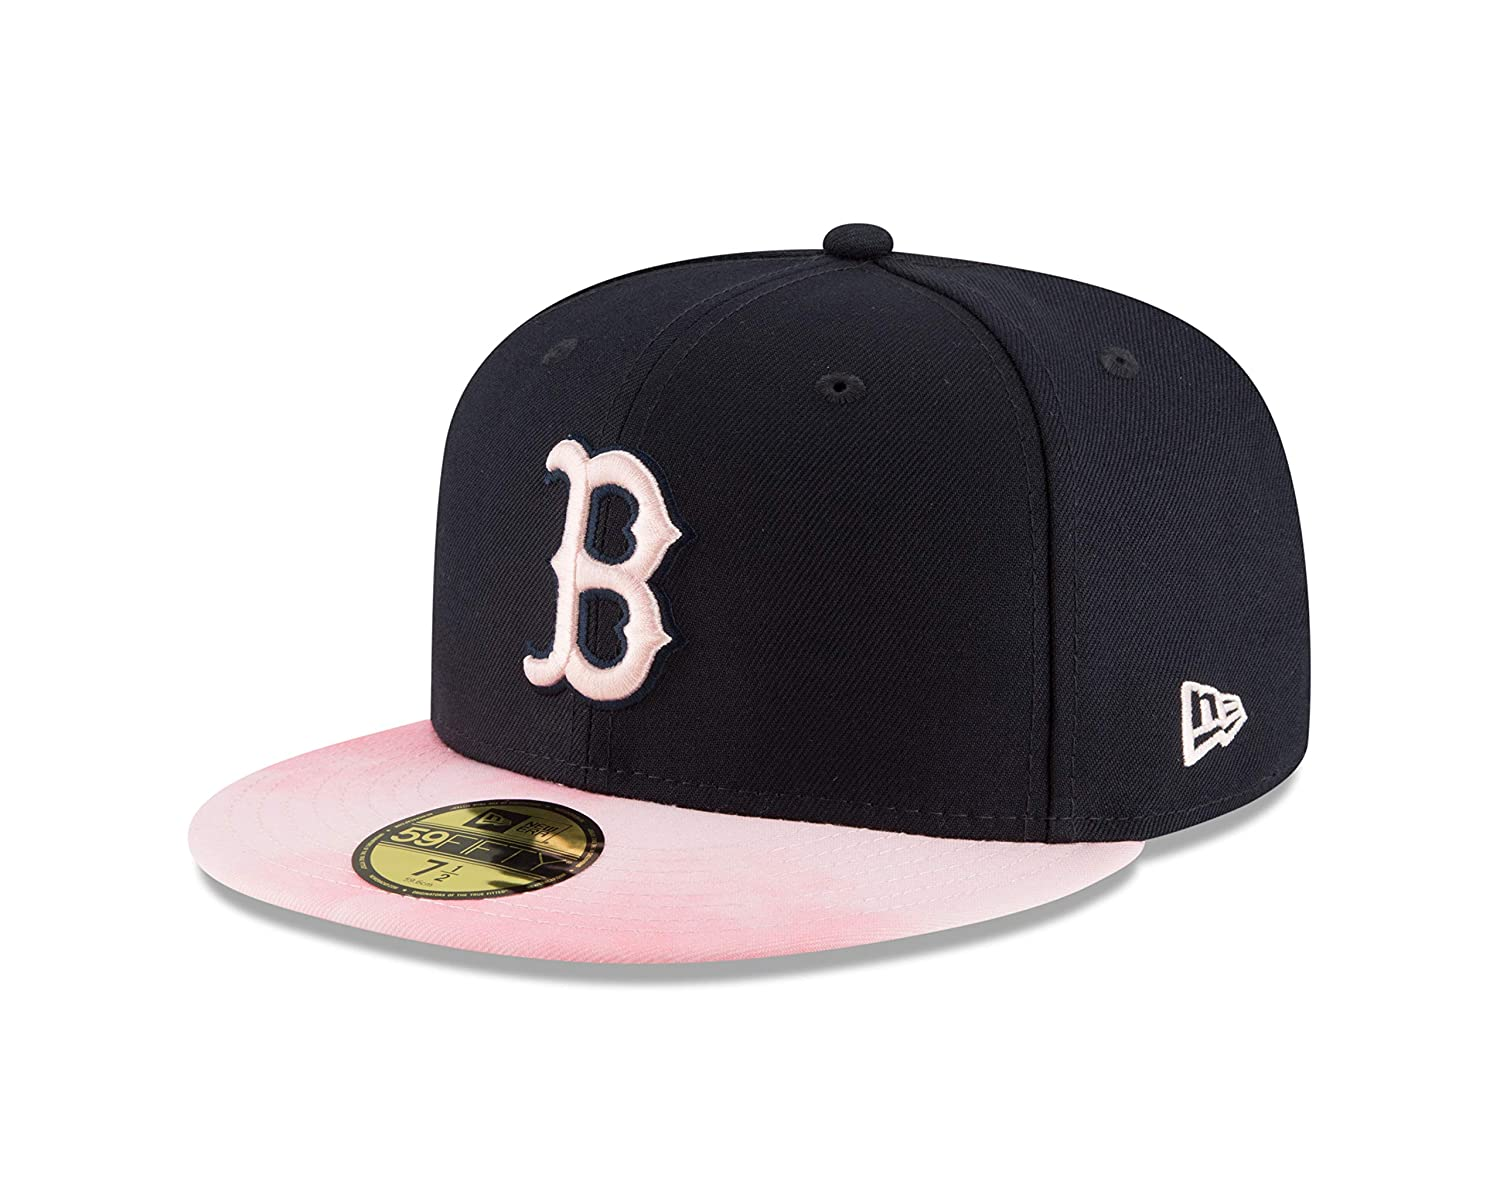 ce9ef0c23c3e22 Amazon.com : New Era Boston Red Sox 2019 Mother's Day On-Field 59Fifty  Fitted Hat - Navy/Pink : Clothing